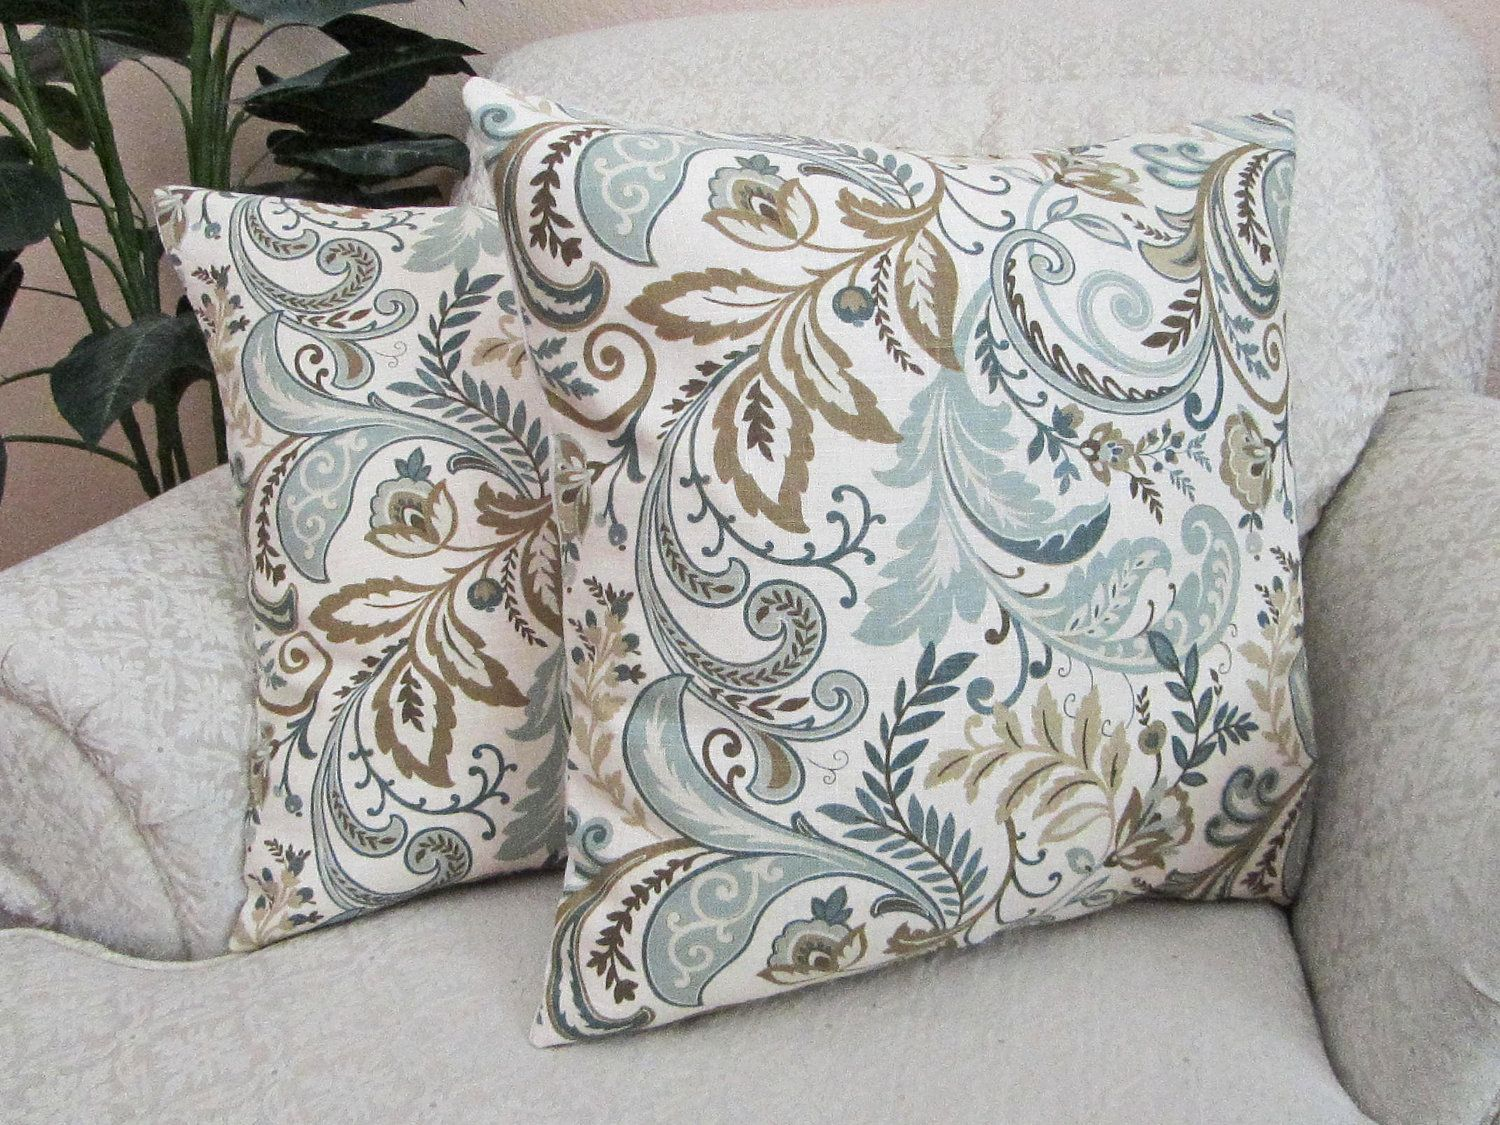 Slate Blue Brown And White Pillow Decor Throw Pillows Modern